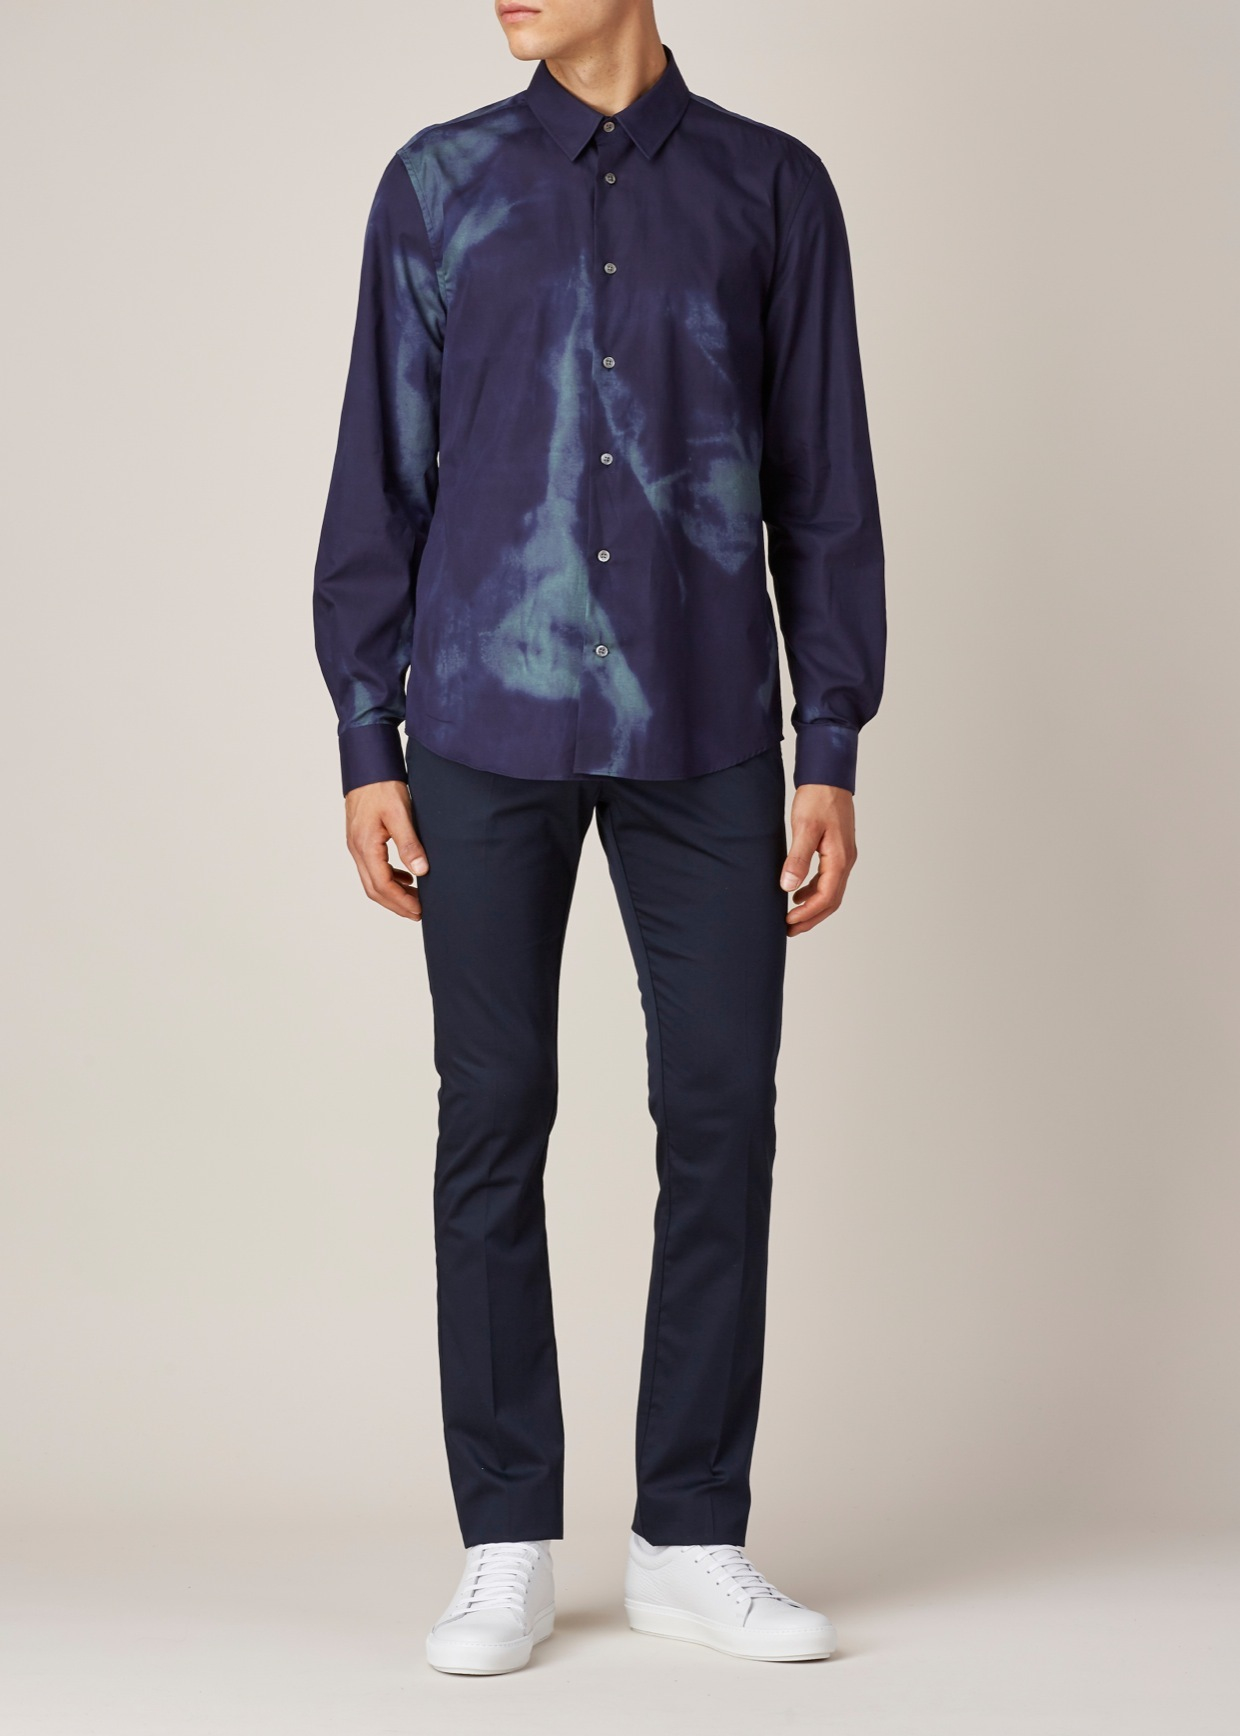 Acne Studios Purple Teal Green Jill Print Button Up In